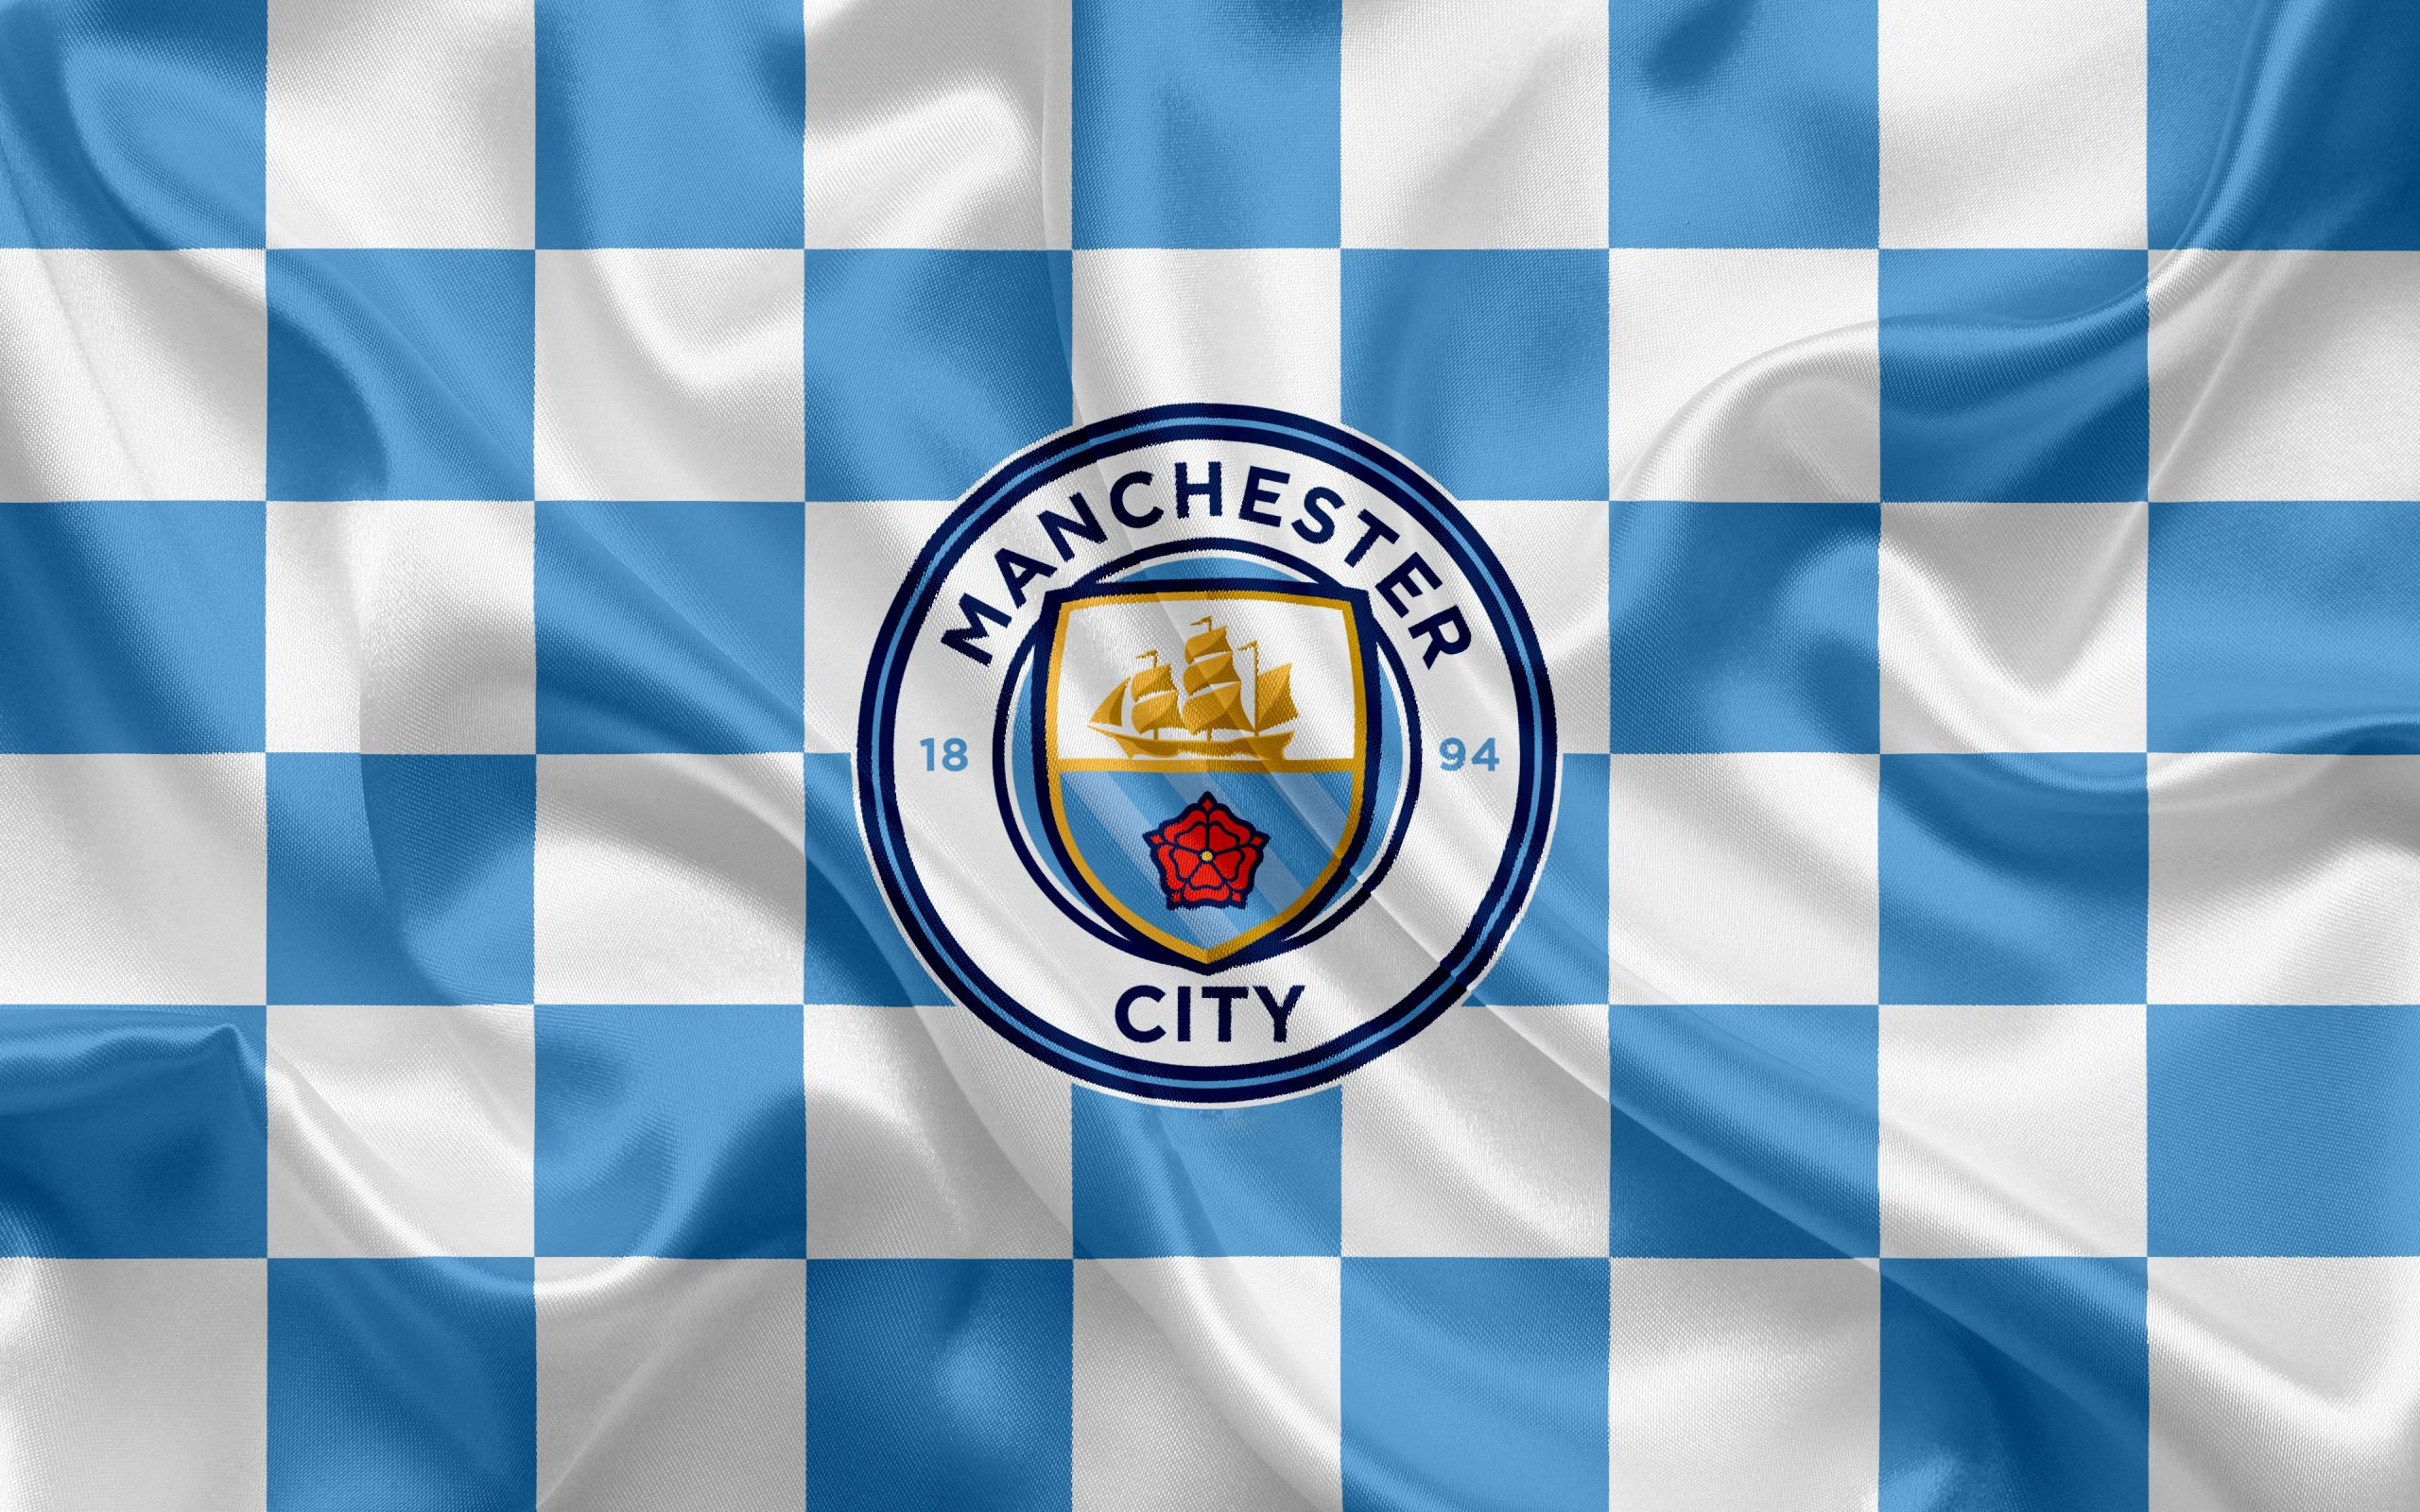 Manchester City Wallpaper Kolpaper Awesome Free Hd Wallpapers